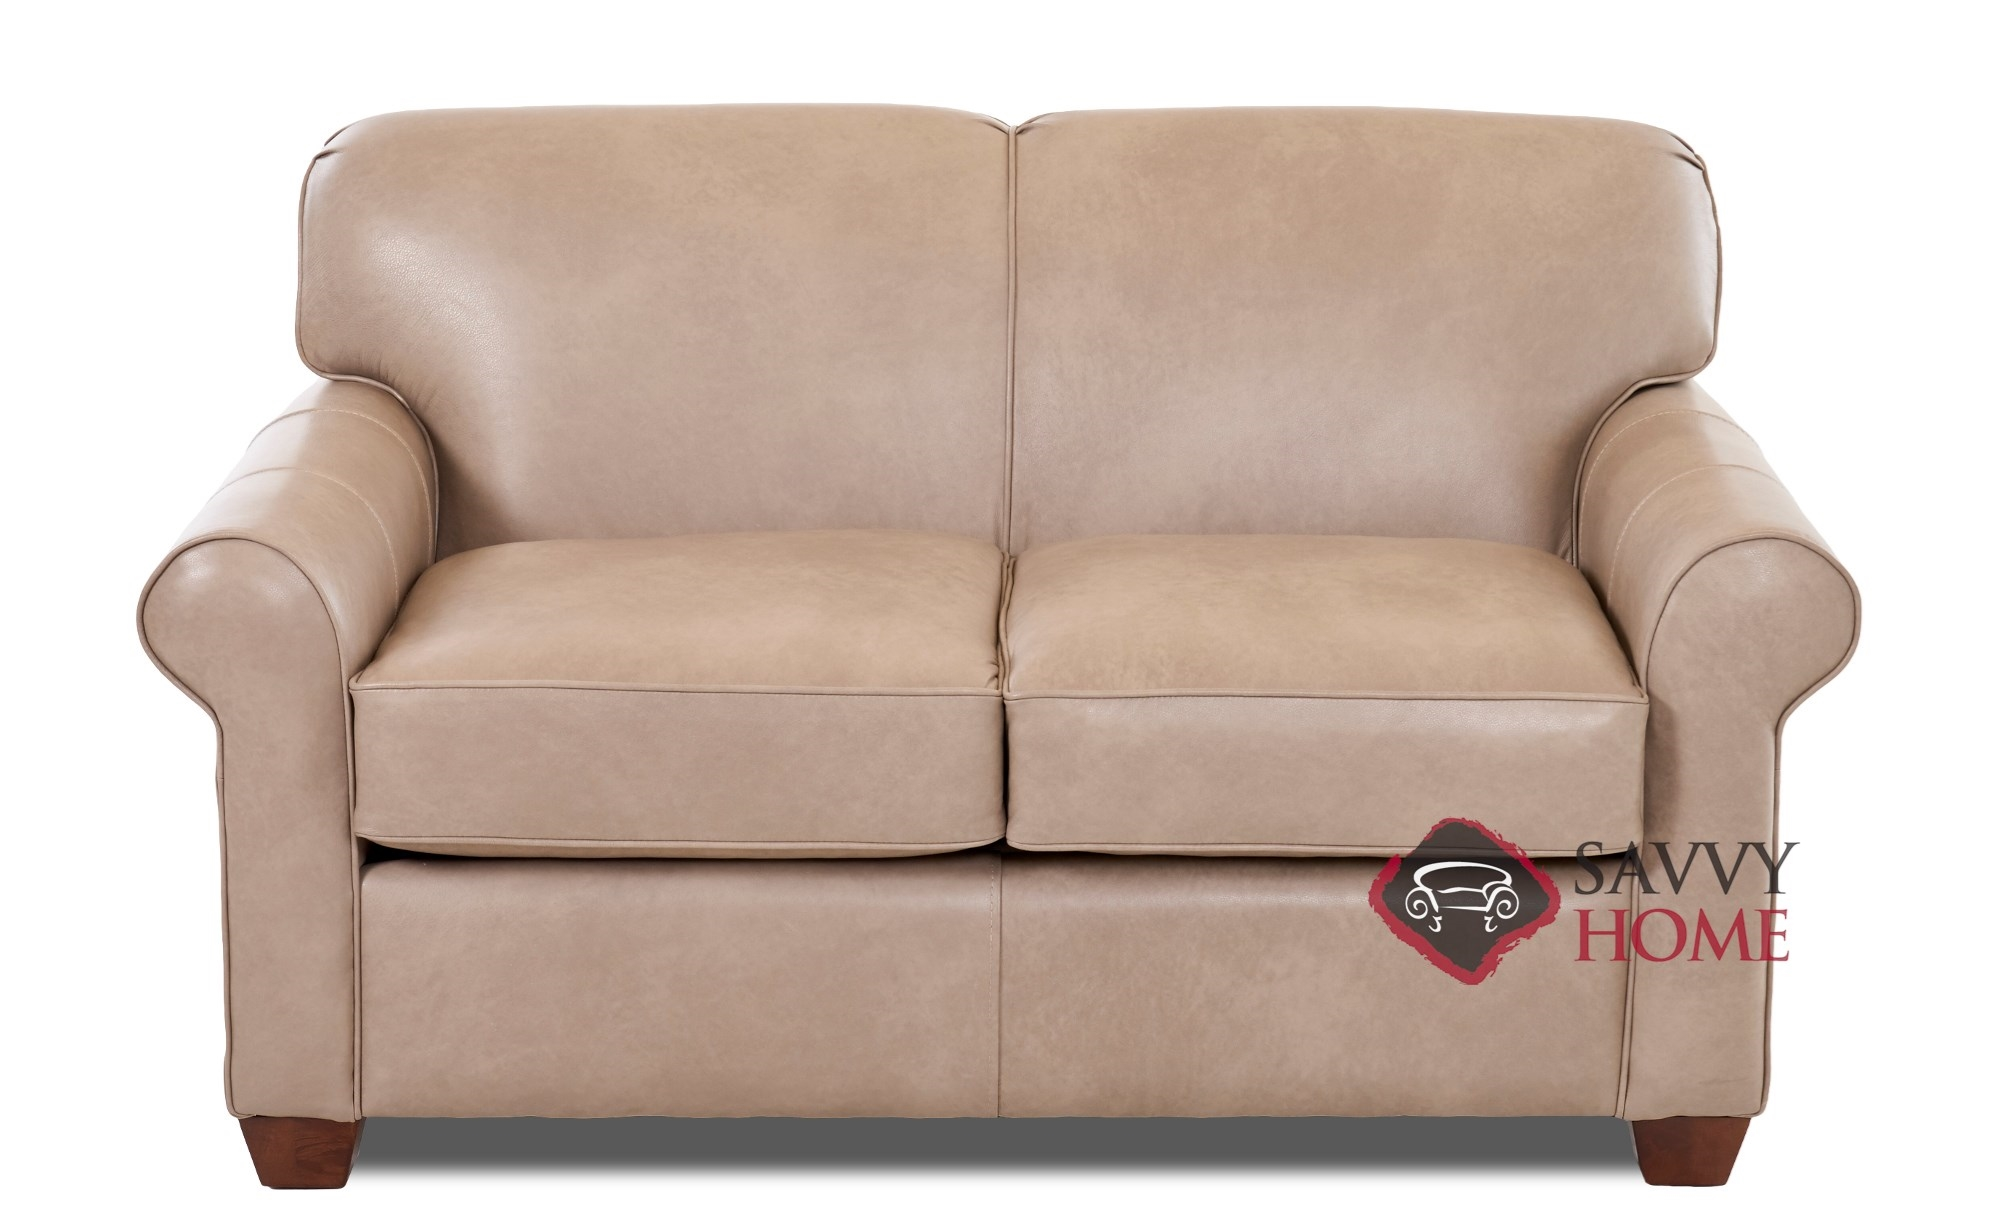 Calgary Leather Sleeper Sofas Twin By Savvy Is Fully Customizable By You Savvyhomestore Com